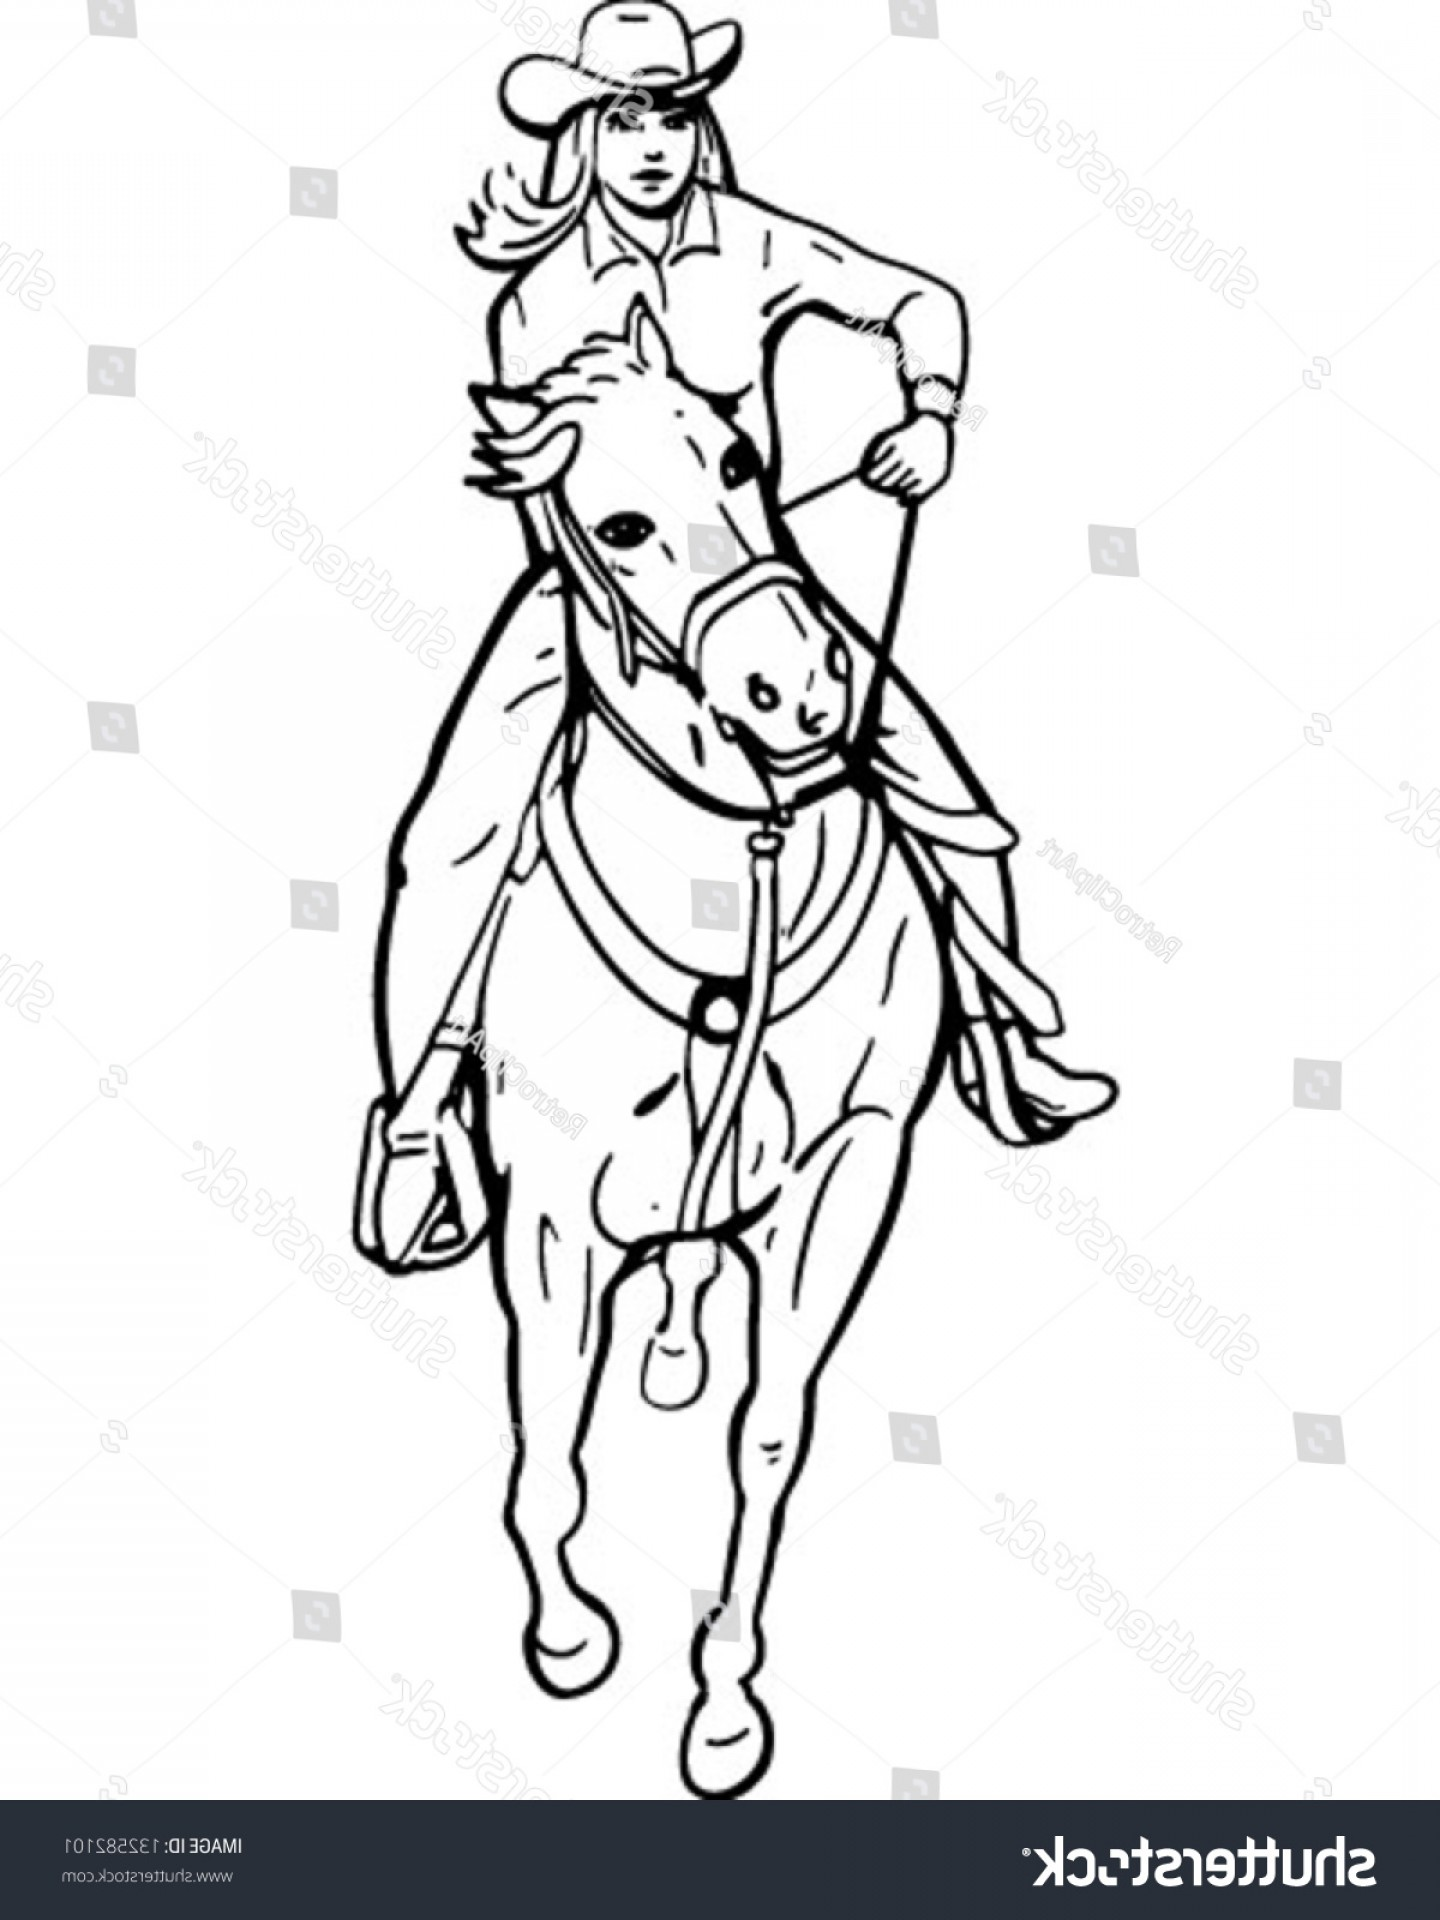 Barrel Racer Vector: Cowgirl Barrel Racer Retro Clip Art